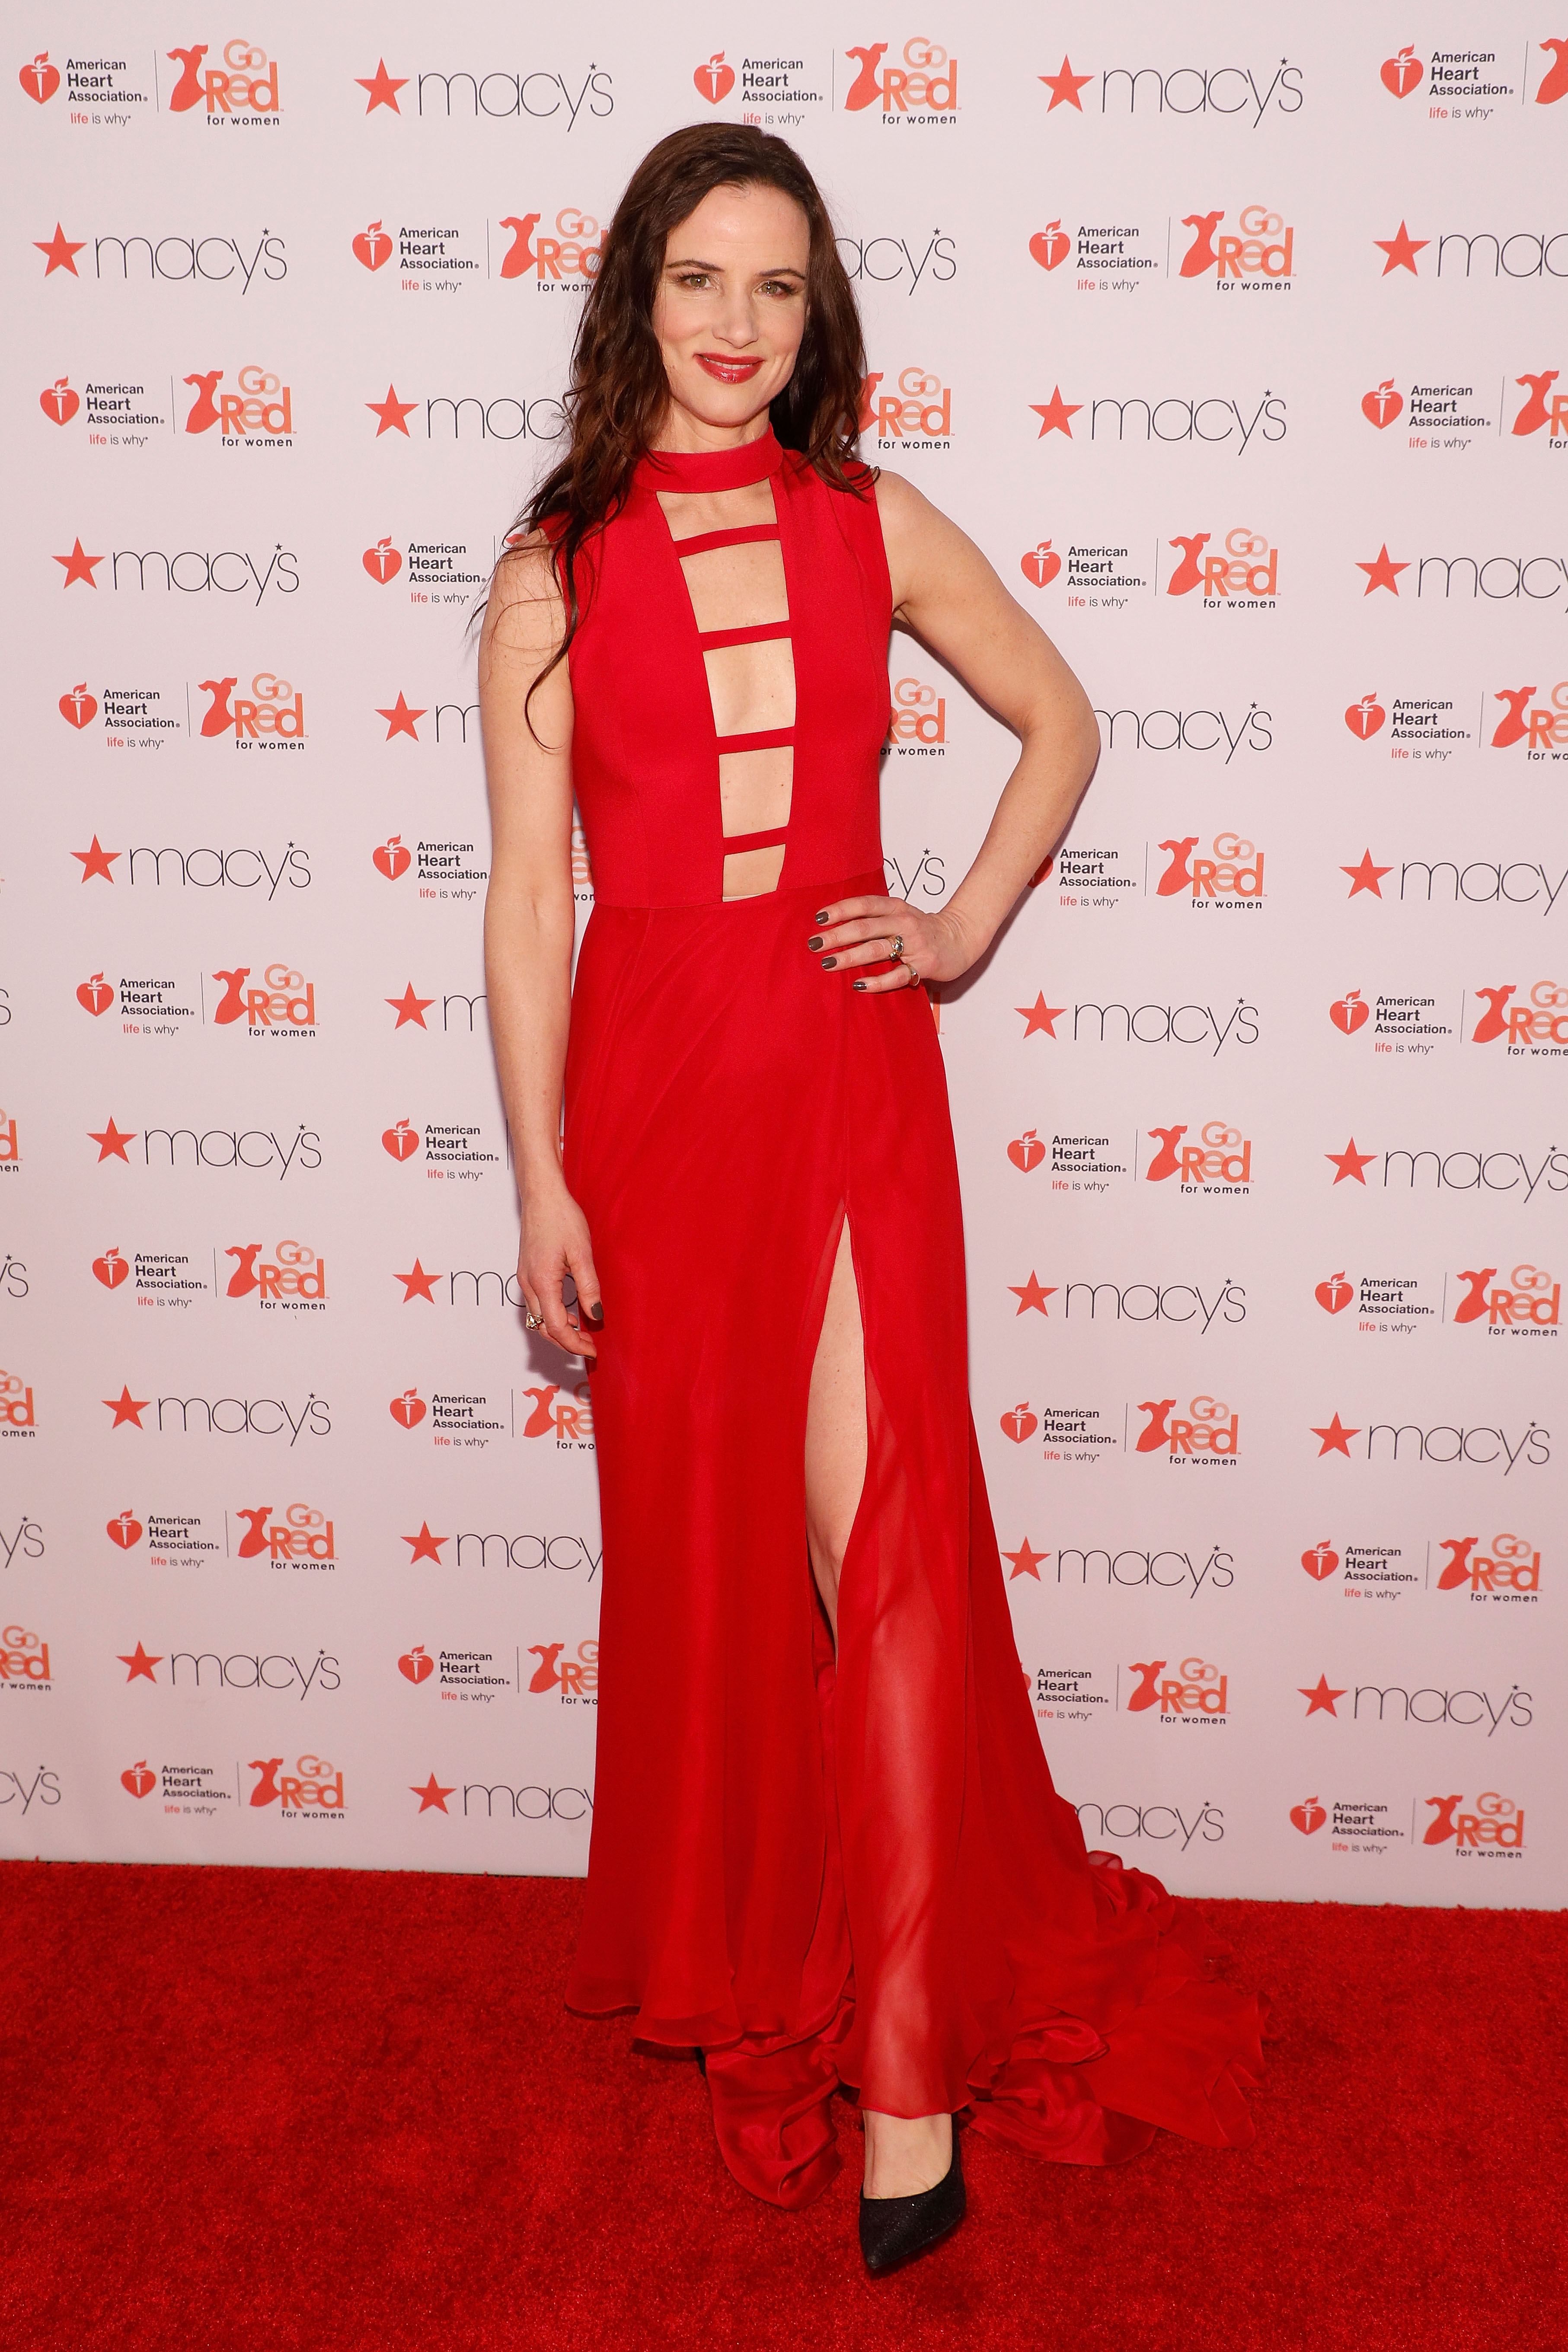 American Heart Association's Go Red For Women Red Dress Collection - Front Row & Backstage - February 2017 - New York Fashion Week